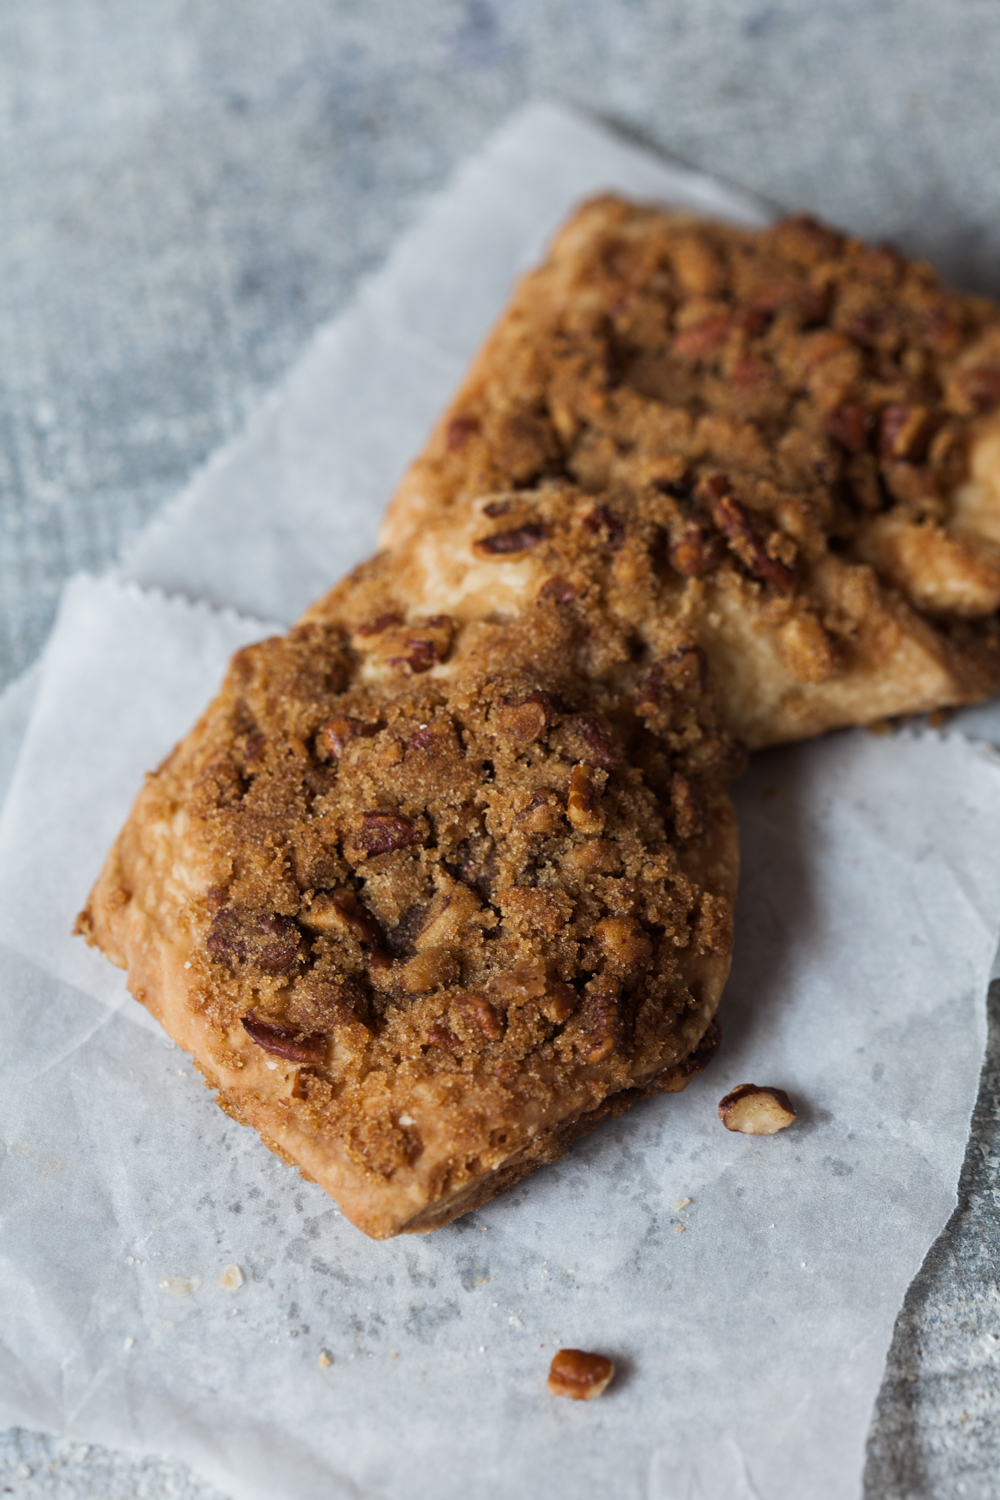 Butterscotch Bow-tie:  The Butterscotch Bowtie is one of the best products in the morning pastry category. Made with delicious pecans that are sprinkled with brown sugar, this truly is a treat. The pastry is a flaky layered pastry with buttery, sugary pecans baked in.